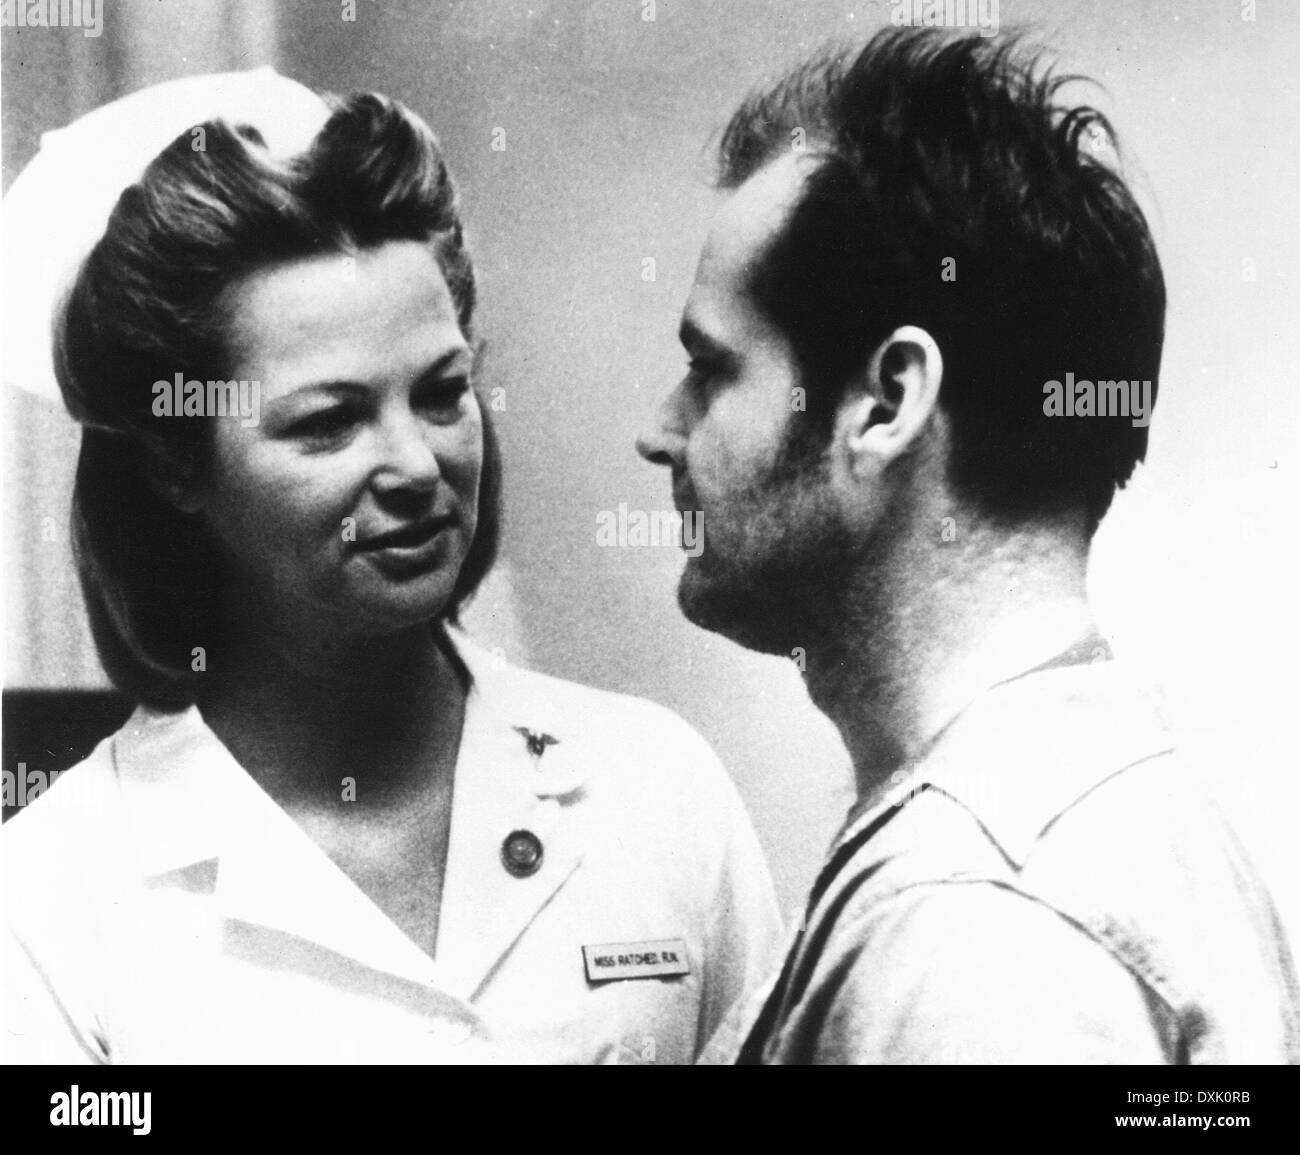 ONE FLEW OVER THE CUCKOO'S NEST - Stock Image